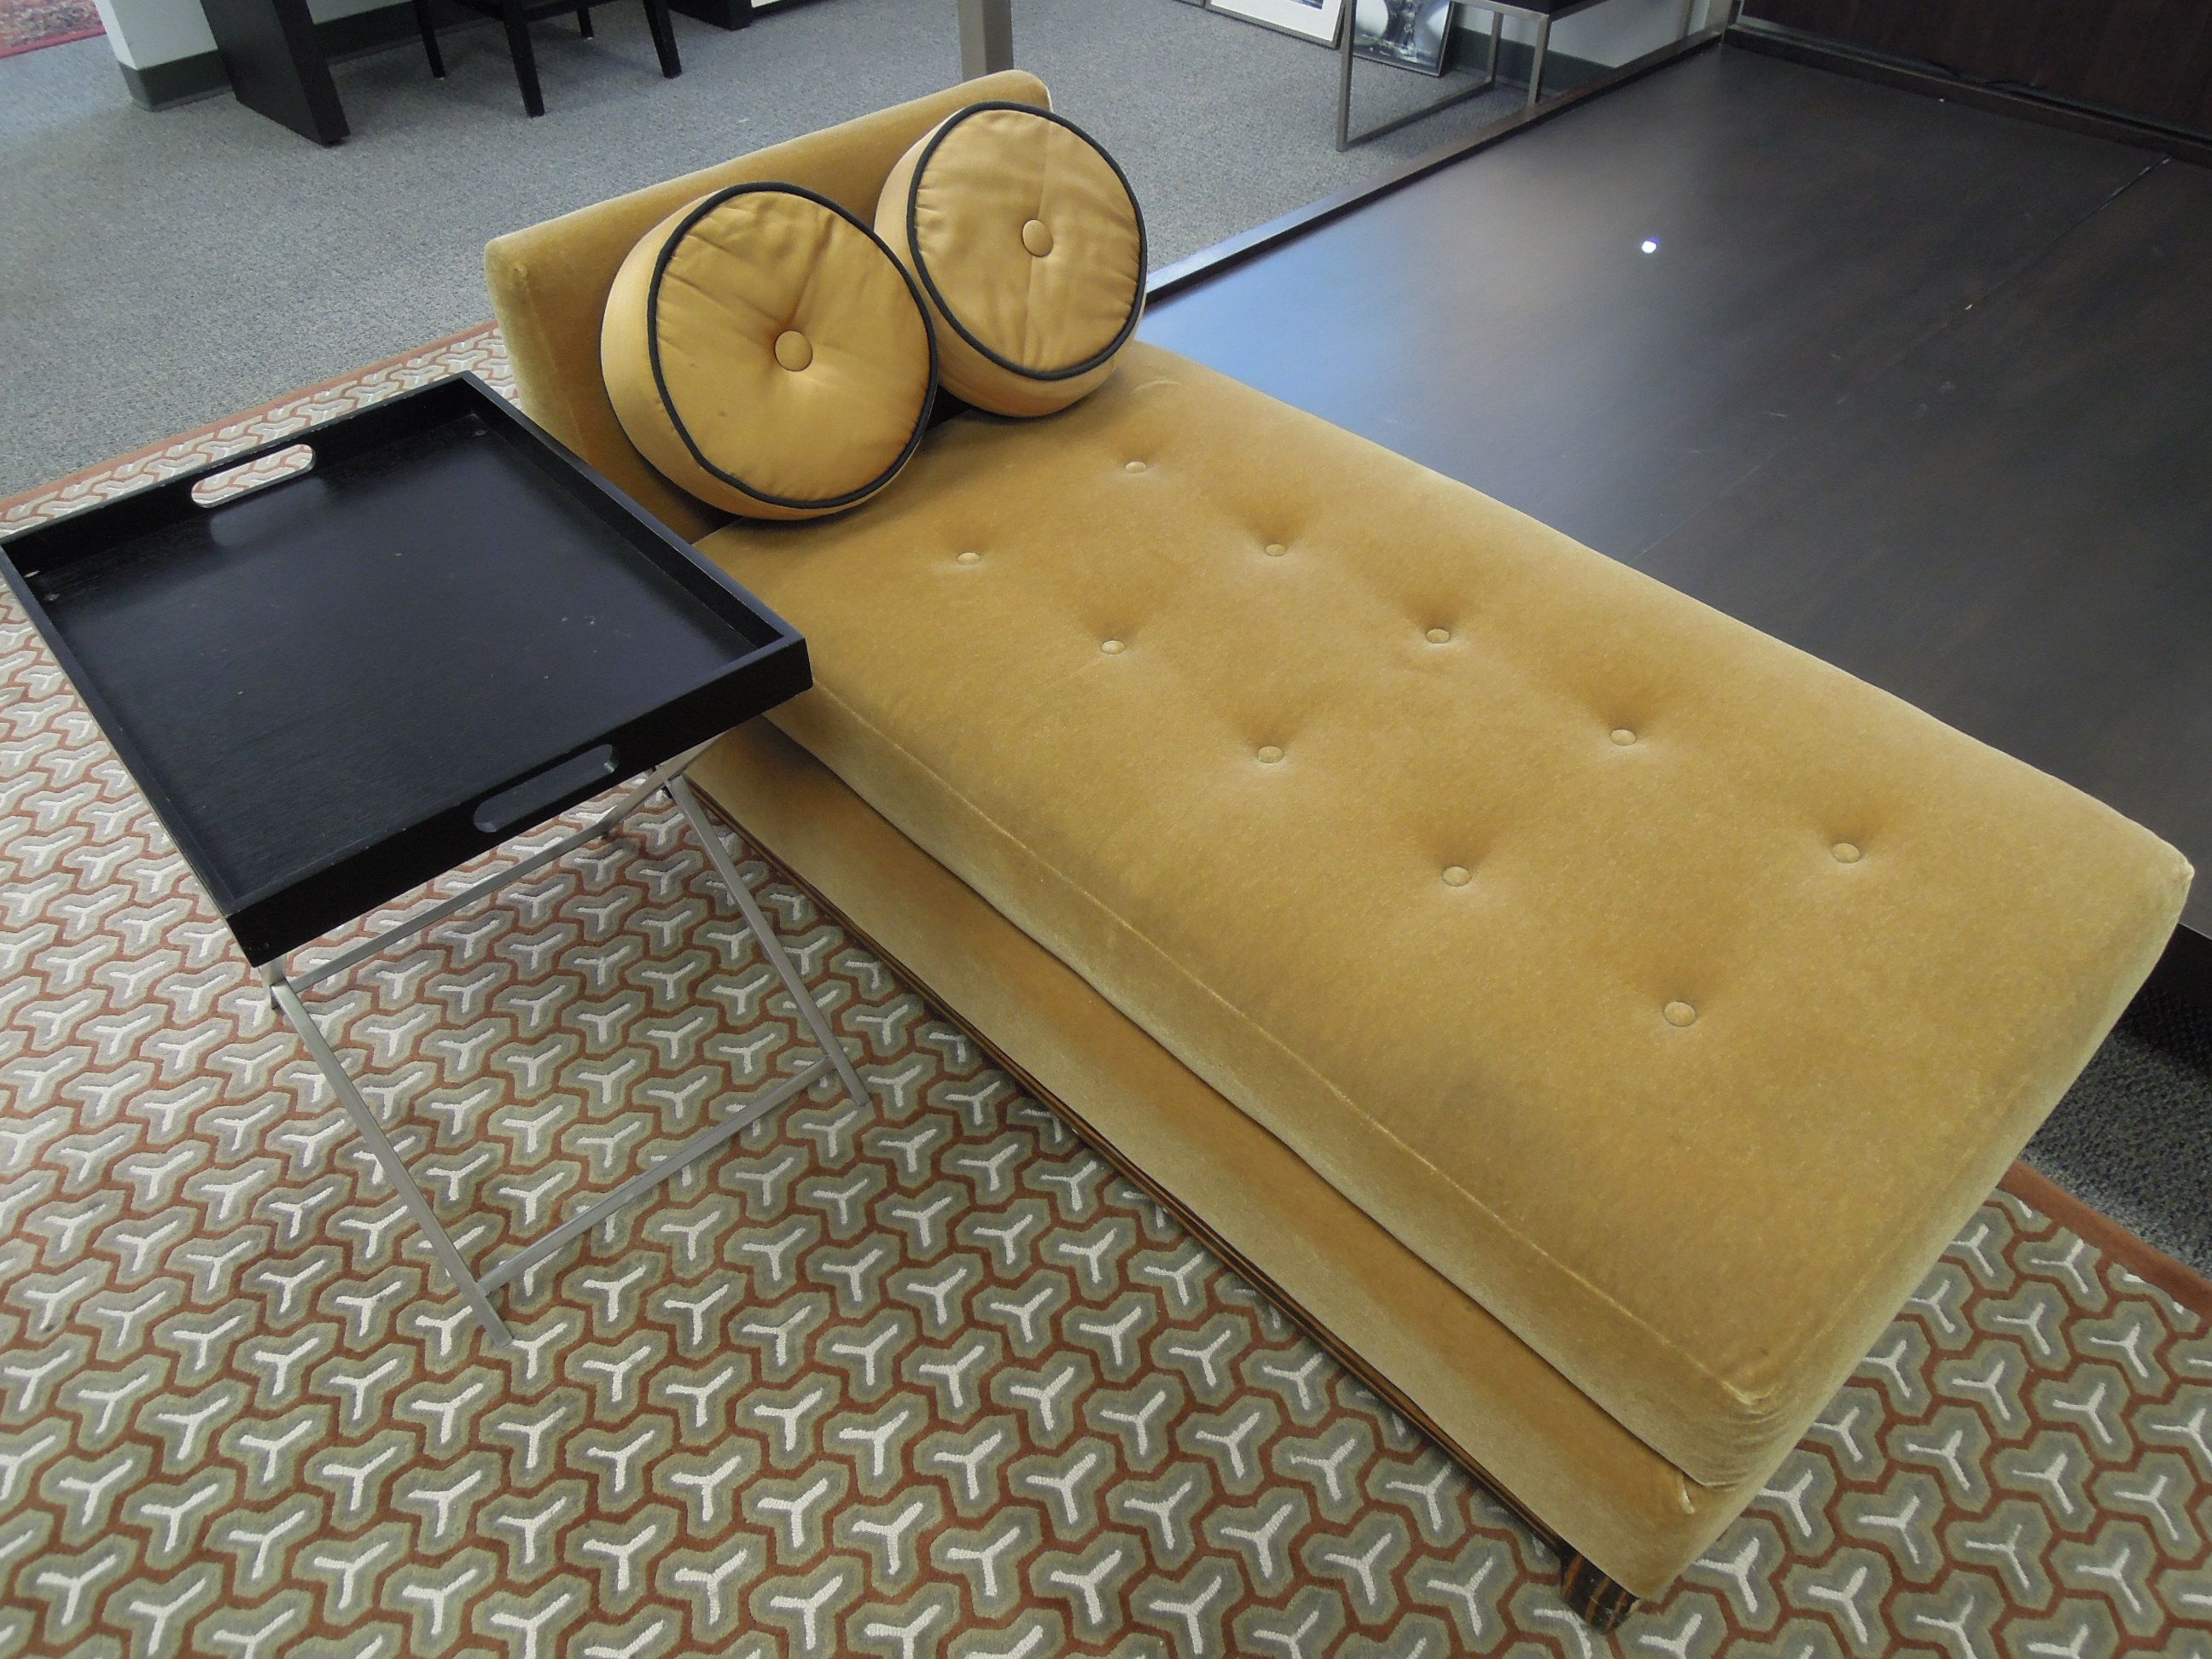 175 Used Furniture For Sale Liquidated Hotel Furniture Westley Contract Services Used Furniture For Sale Wedding Furniture Hotel Furniture